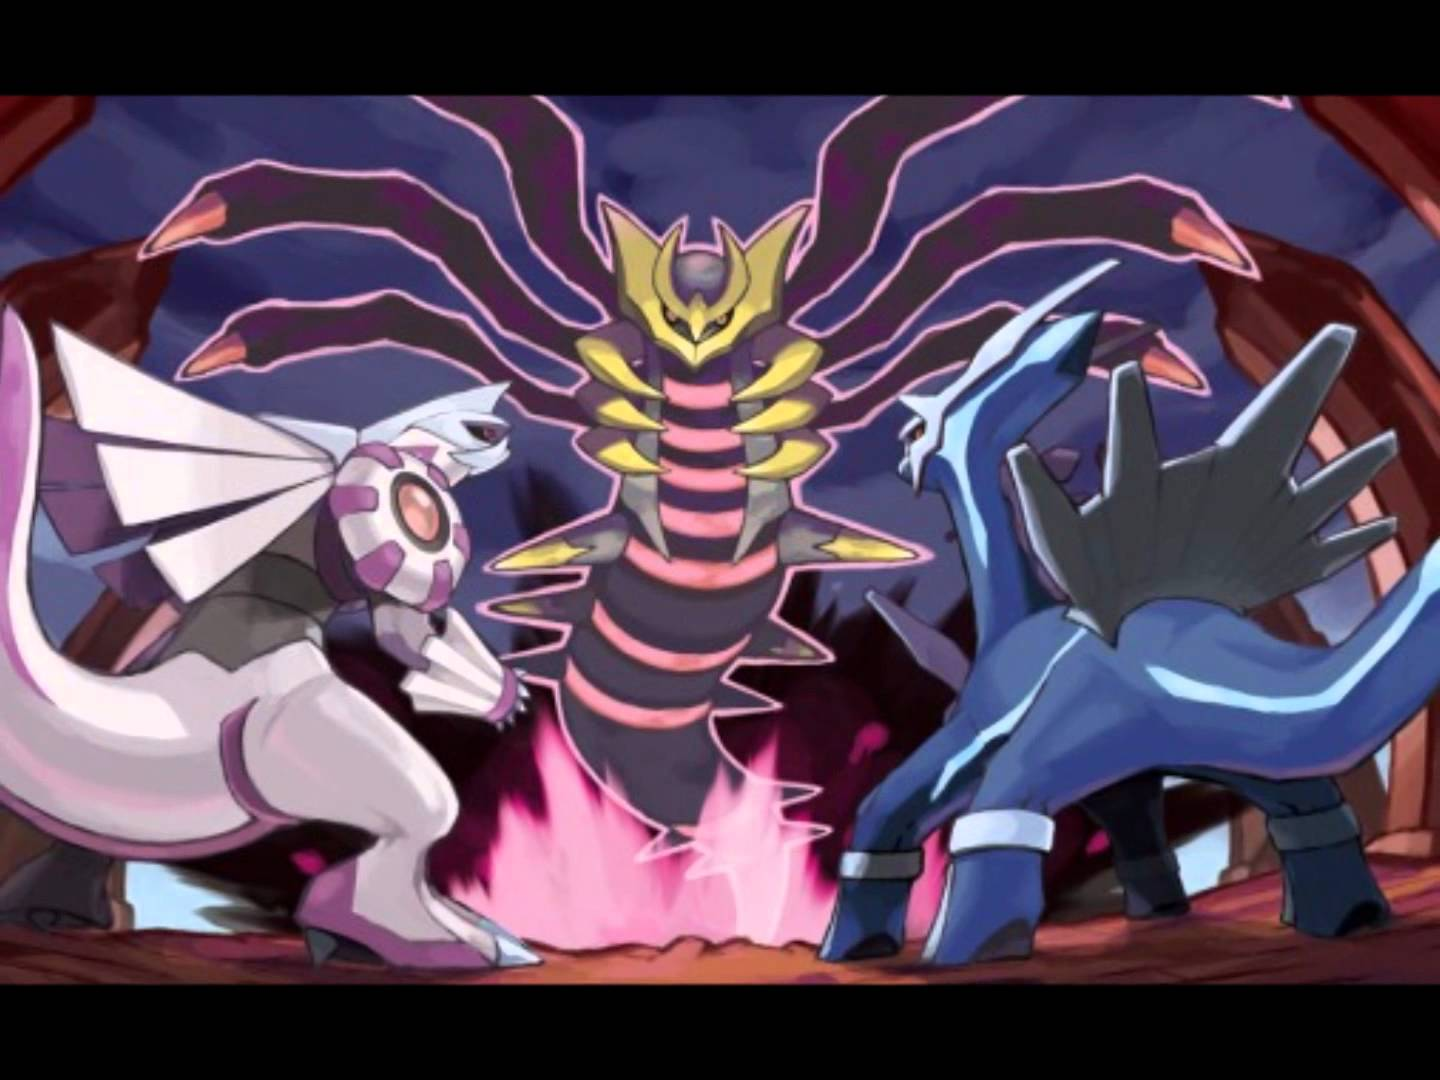 Shiny Palkia , Dialga, And Giratina [Origin And Altered Forms